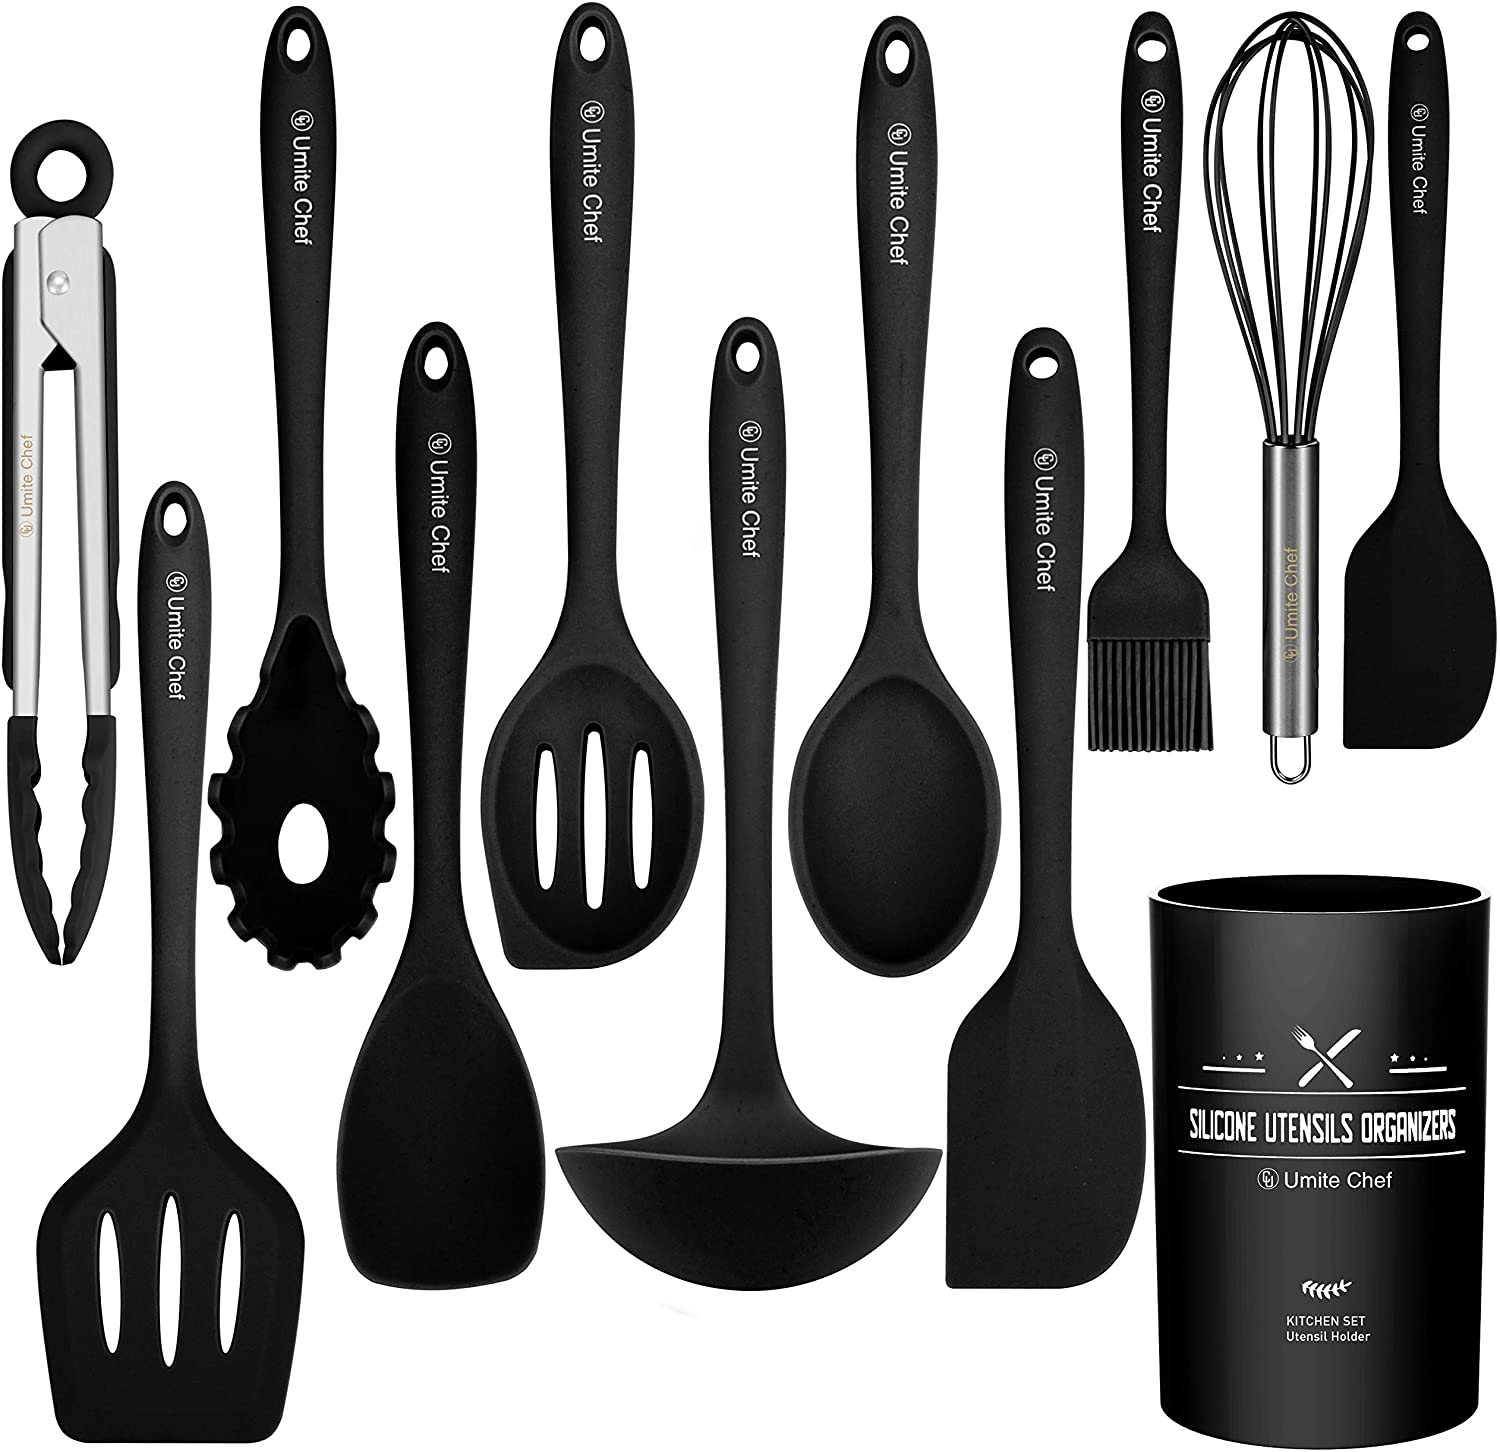 Amazon Com Kitchen Utensil Set 12 Pieces Cooking Utensils Silicone Umite Chef Nonstick Cookware With Spatula Colored Best Tools Gadgets Crock Black Dining